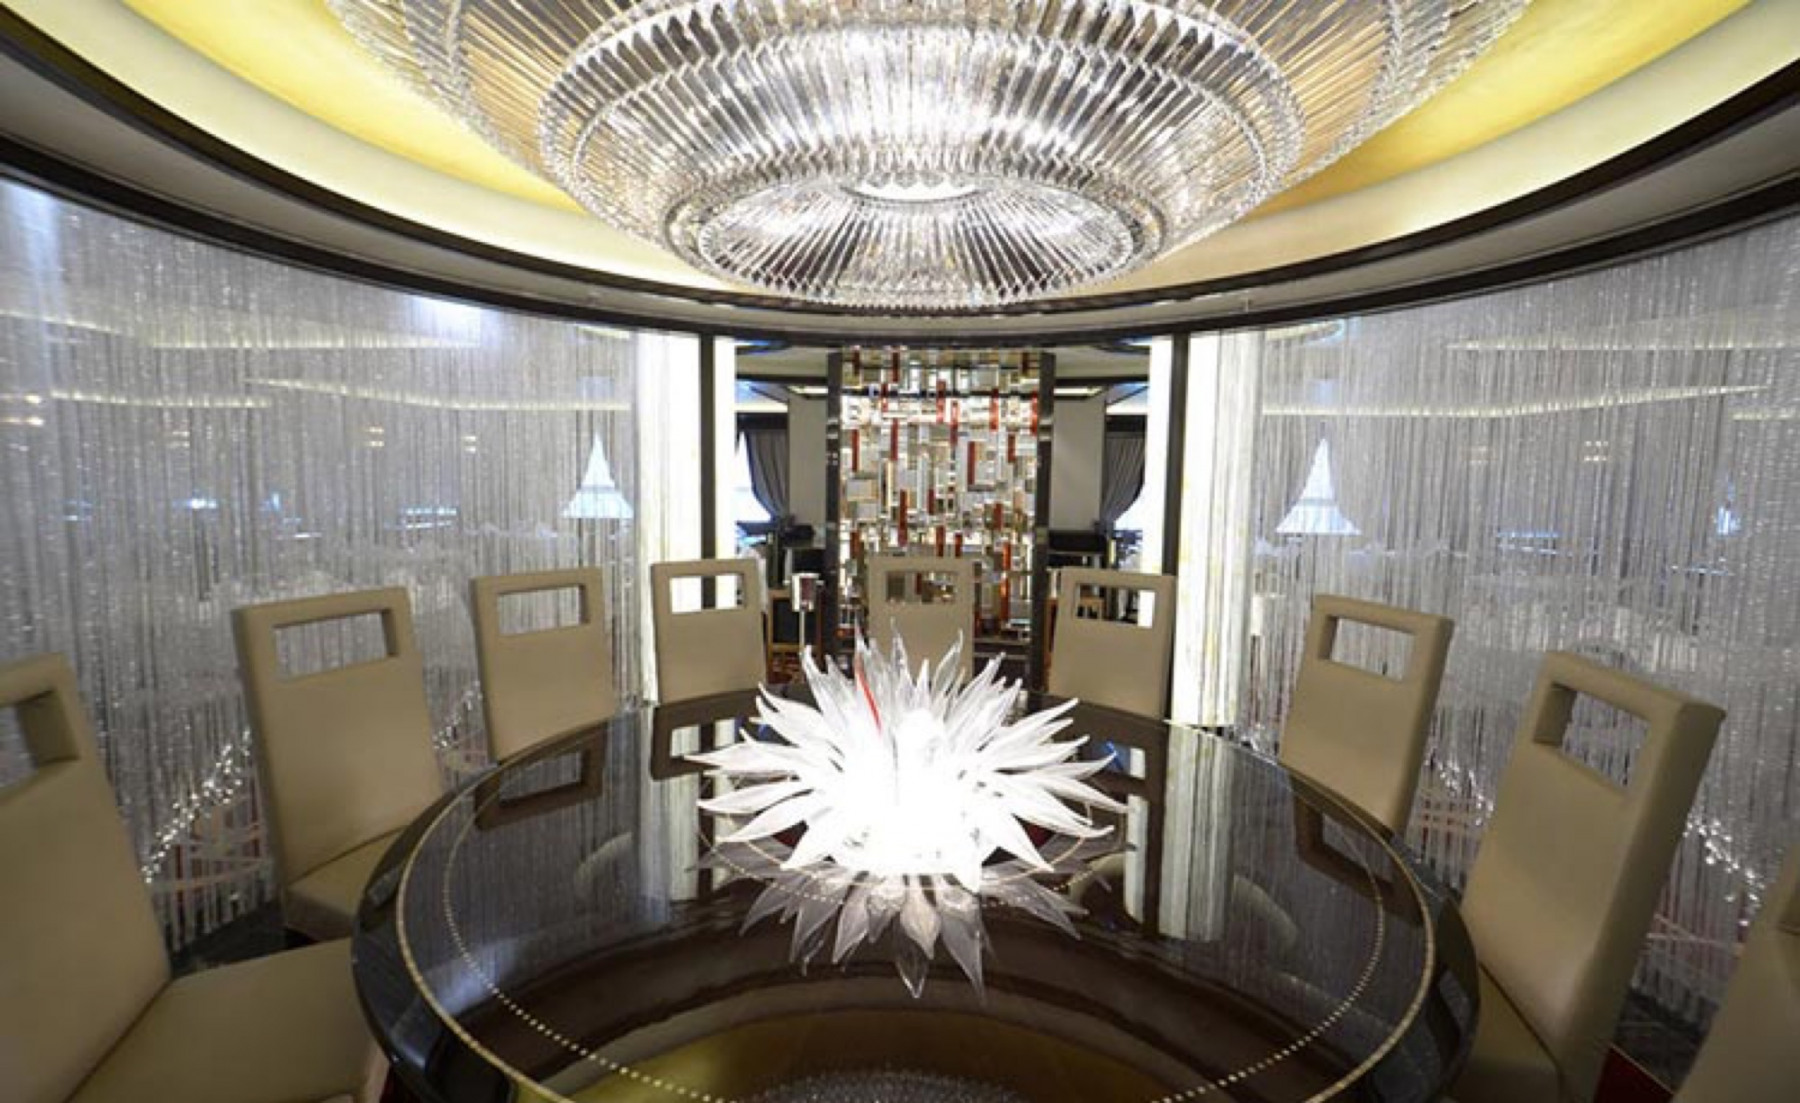 Princess Cruises Royal Class Interior lumiere table.jpg